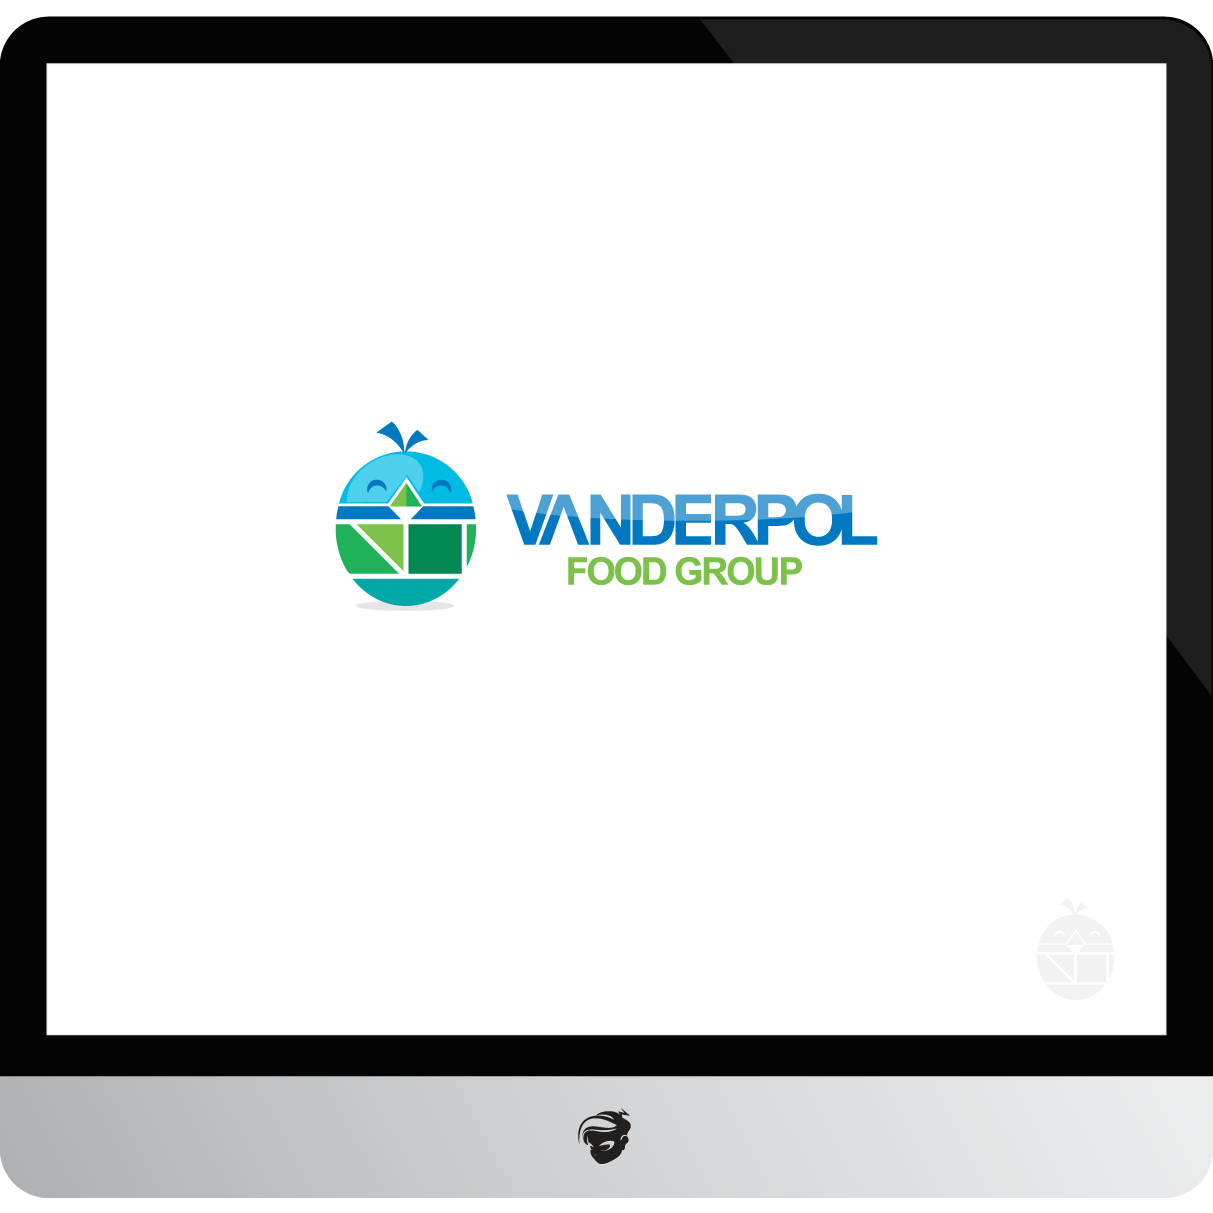 Logo Design by zesthar - Entry No. 10 in the Logo Design Contest Creative Logo Design for Vanderpol Food Group.